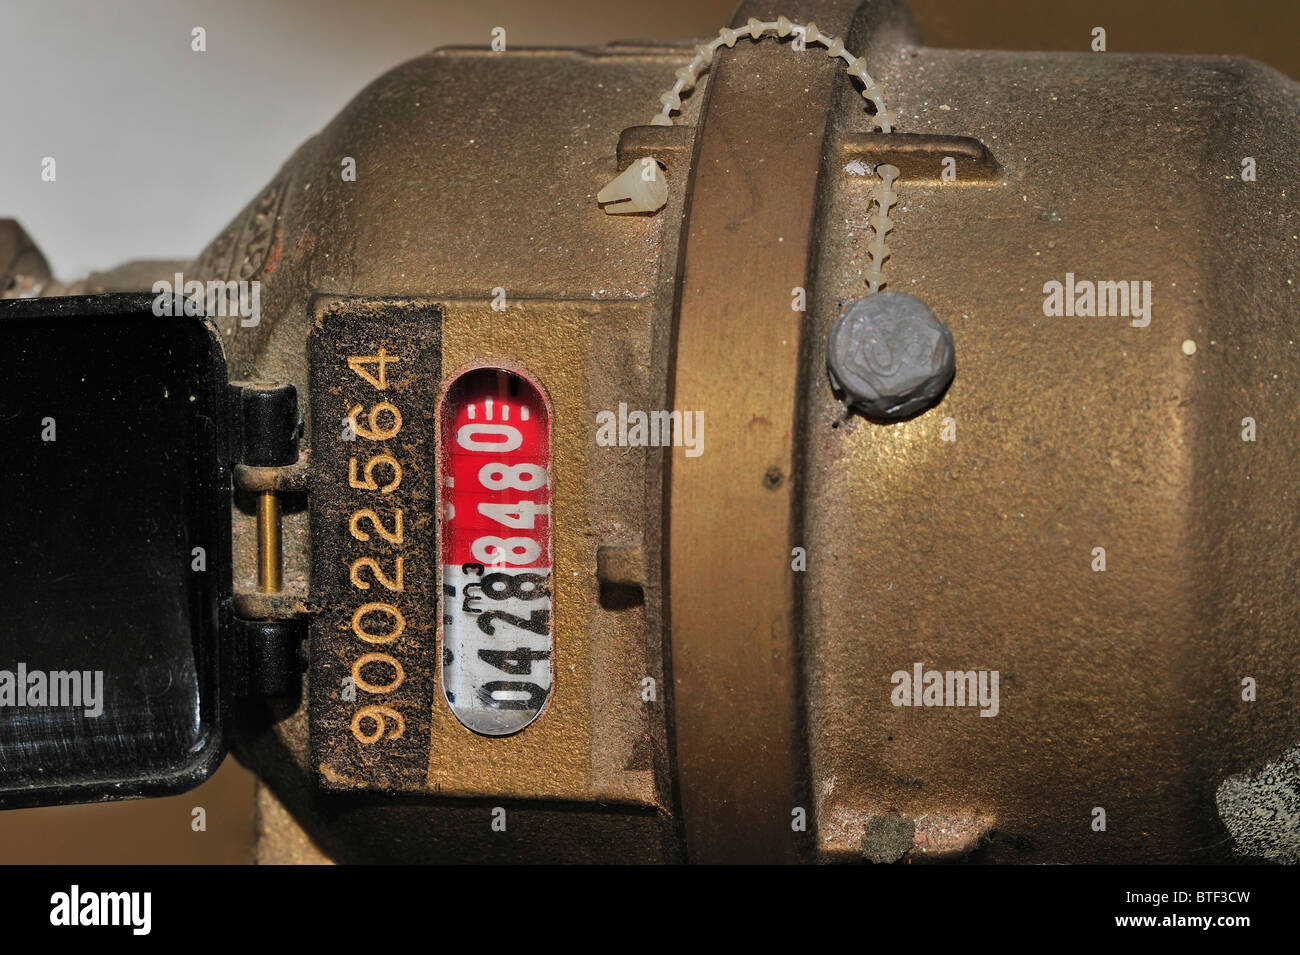 Water meter used to measure the volume of domestic water usage - Stock Image